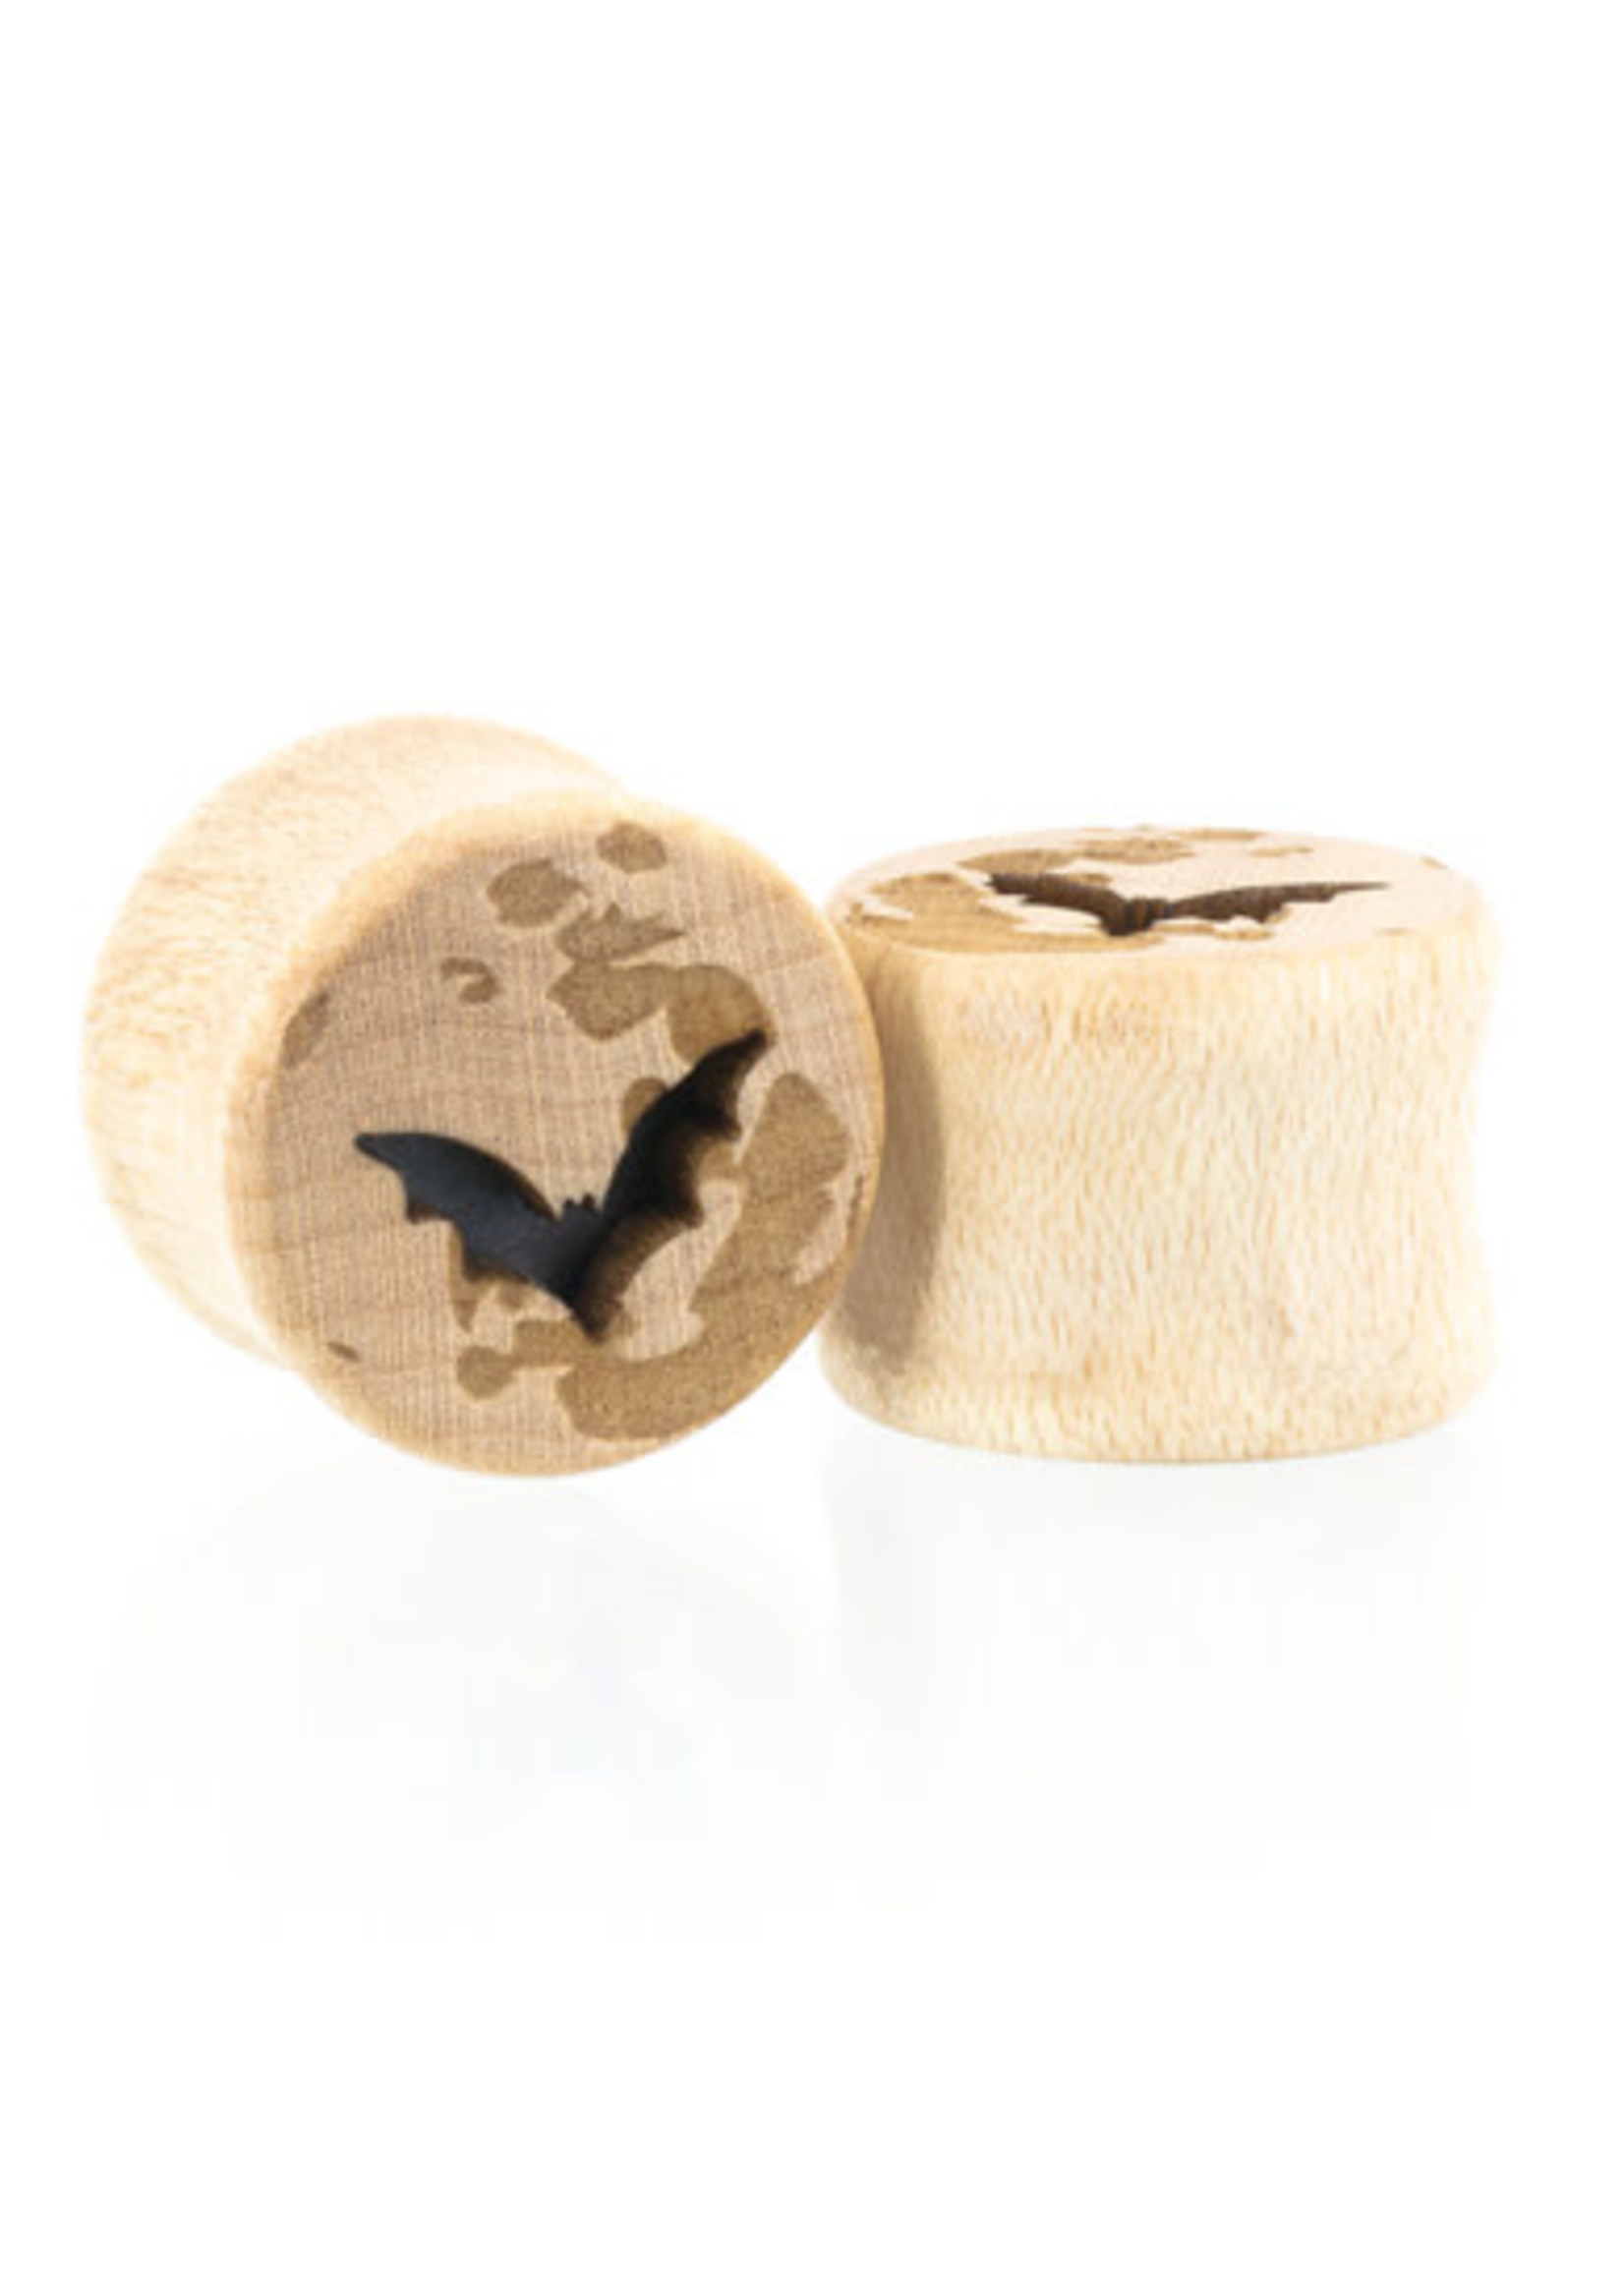 "1/2"" Moon Bat Plugs"